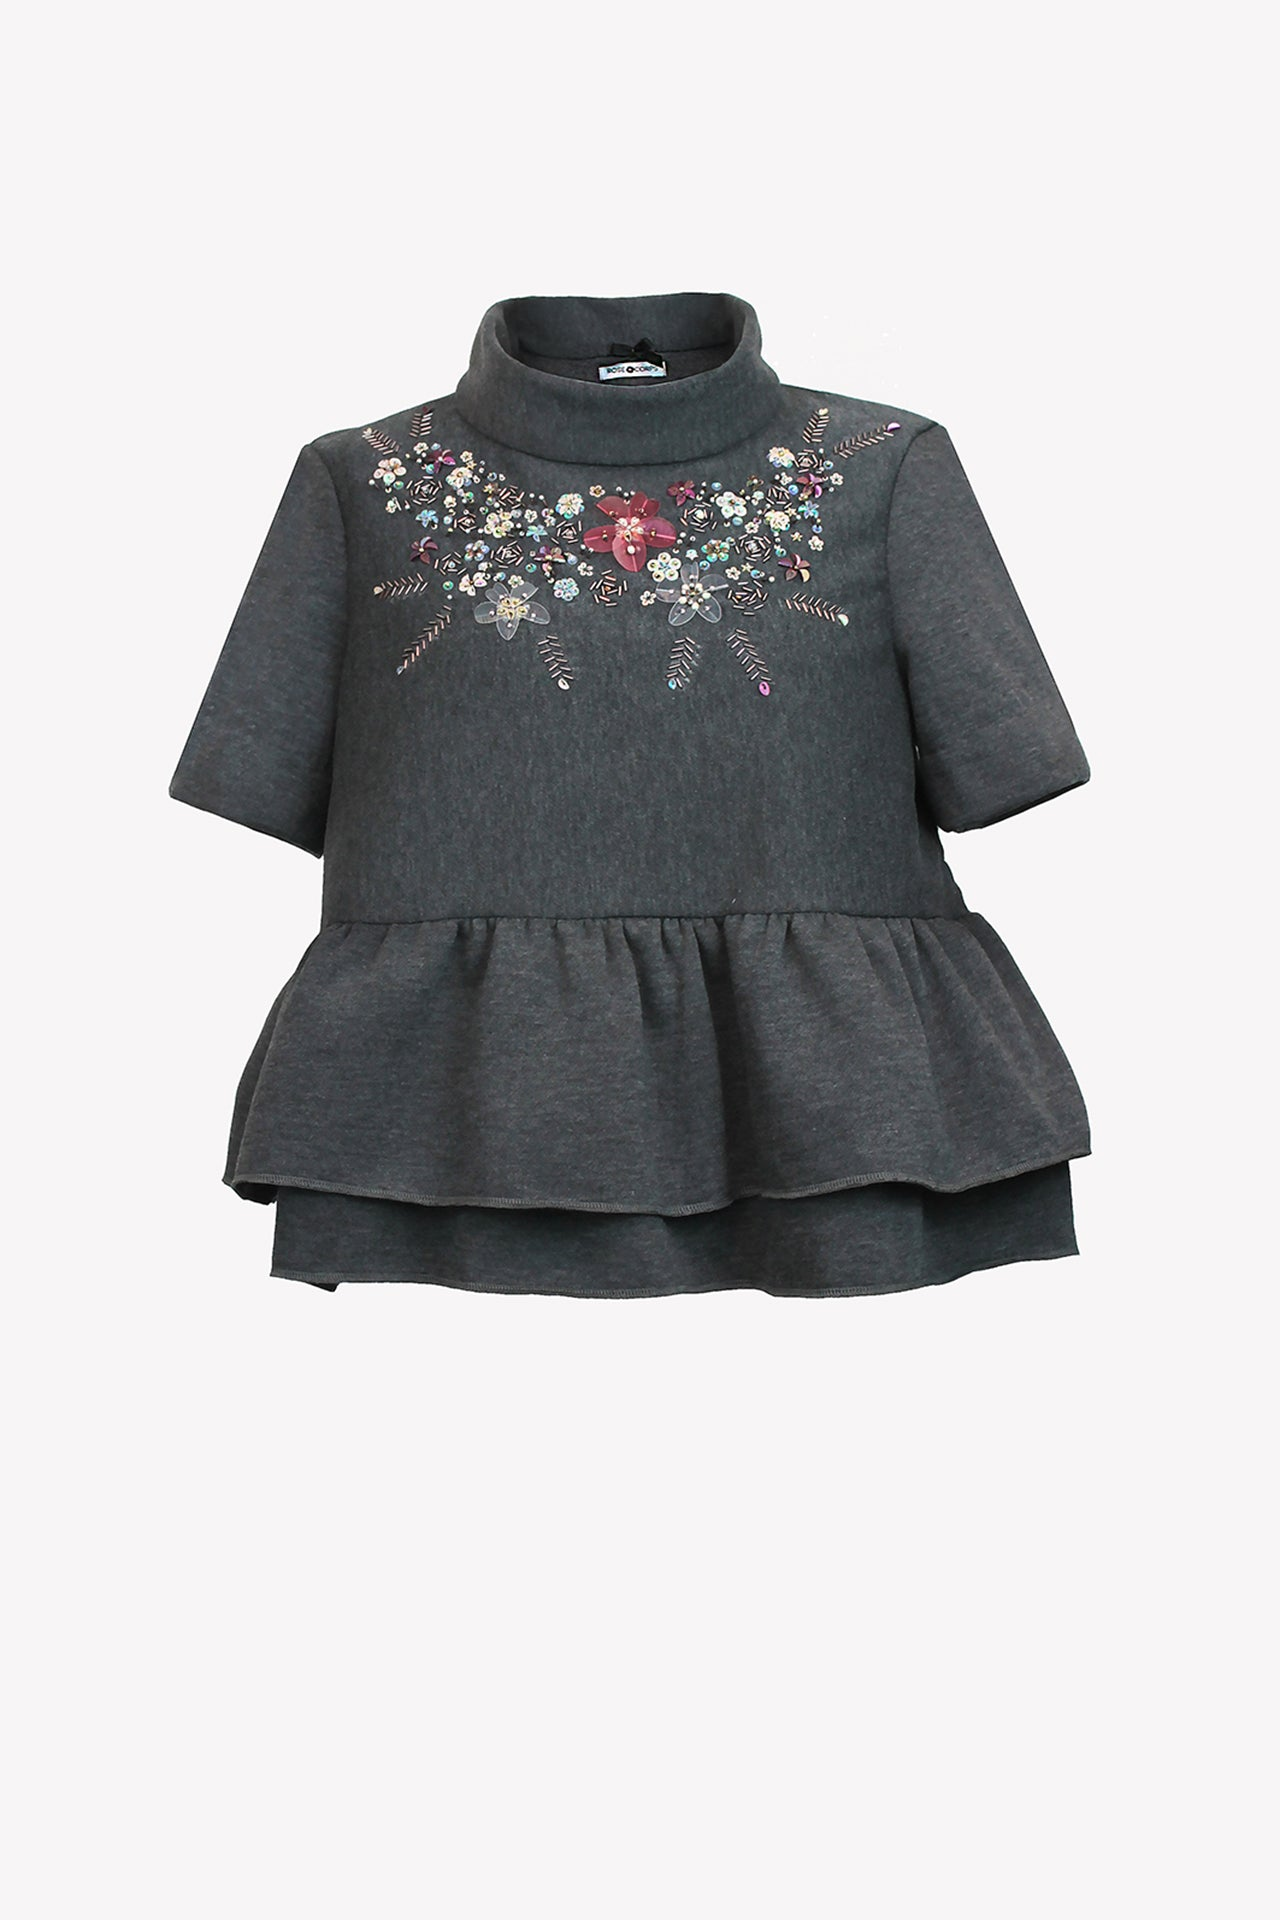 Short sleeve sweater crop top with floral bead embroidery